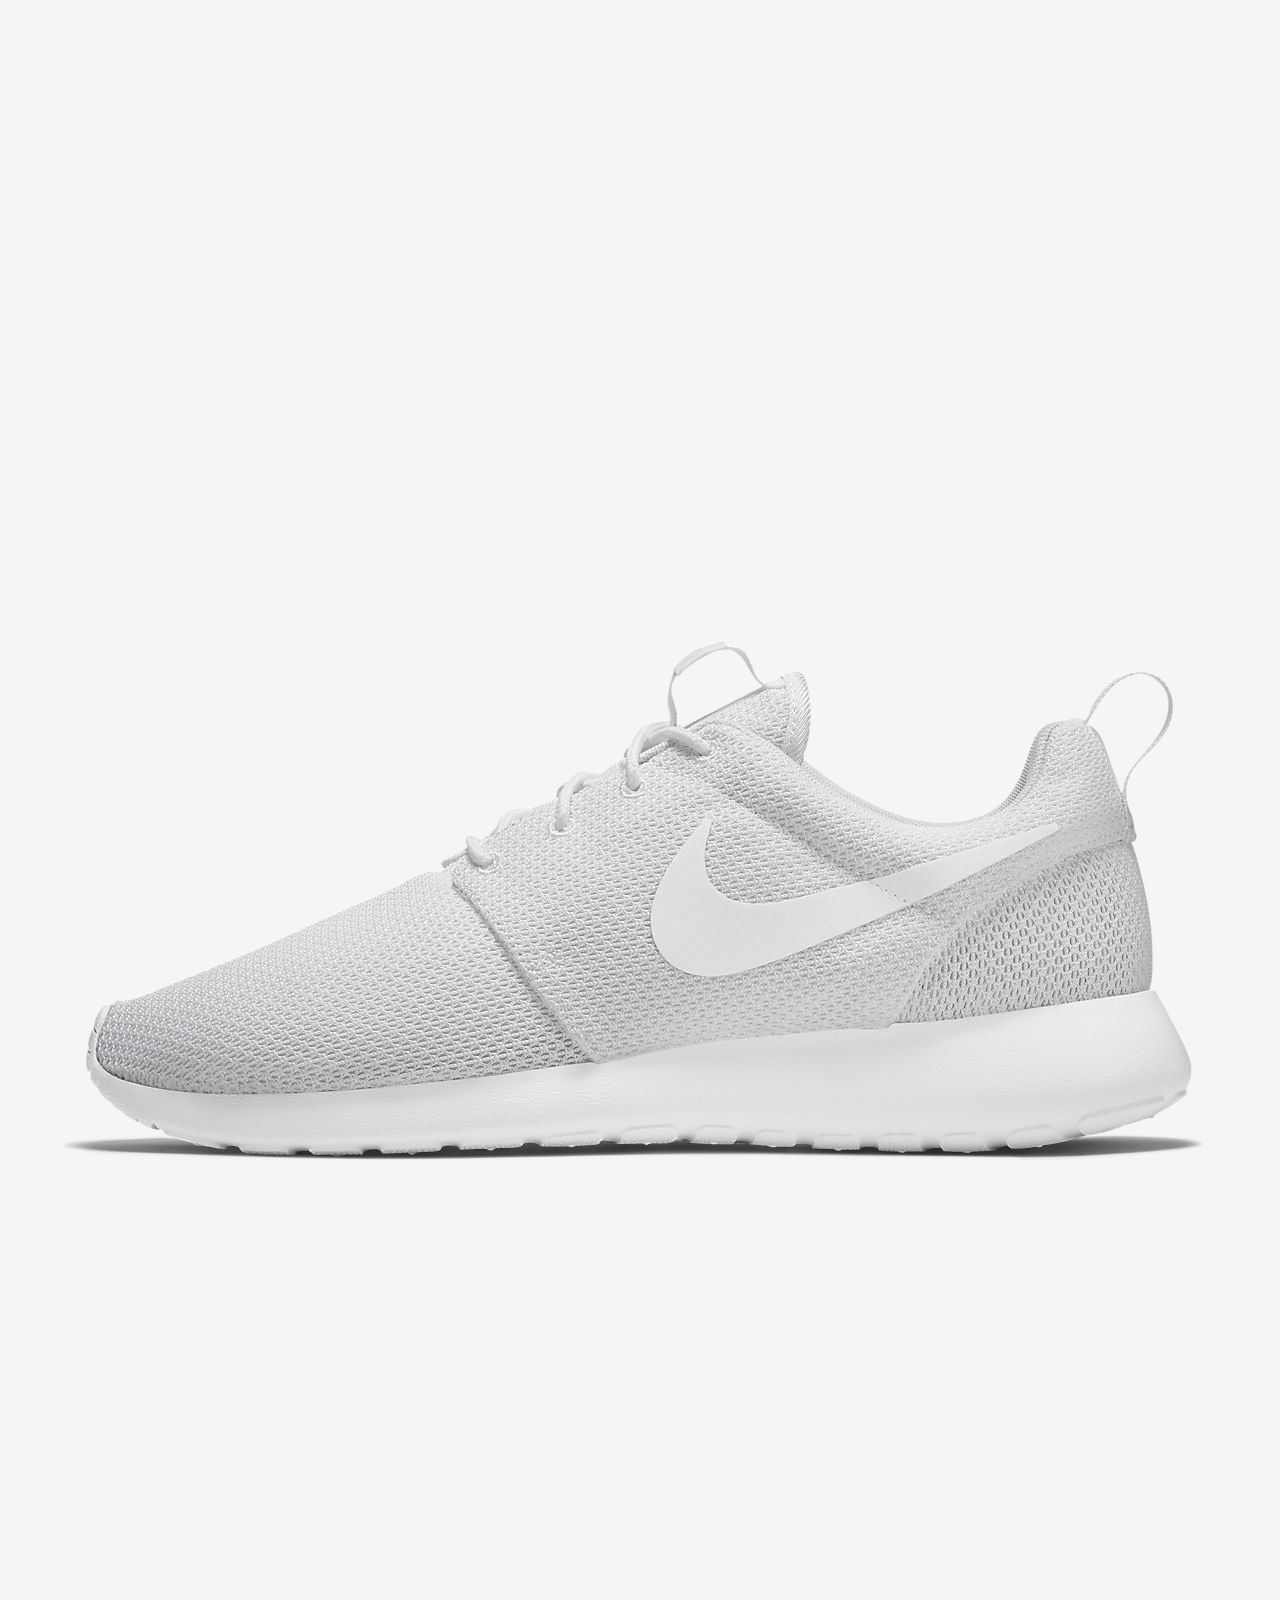 a927b732624 Nike Roshe One Men's Shoe